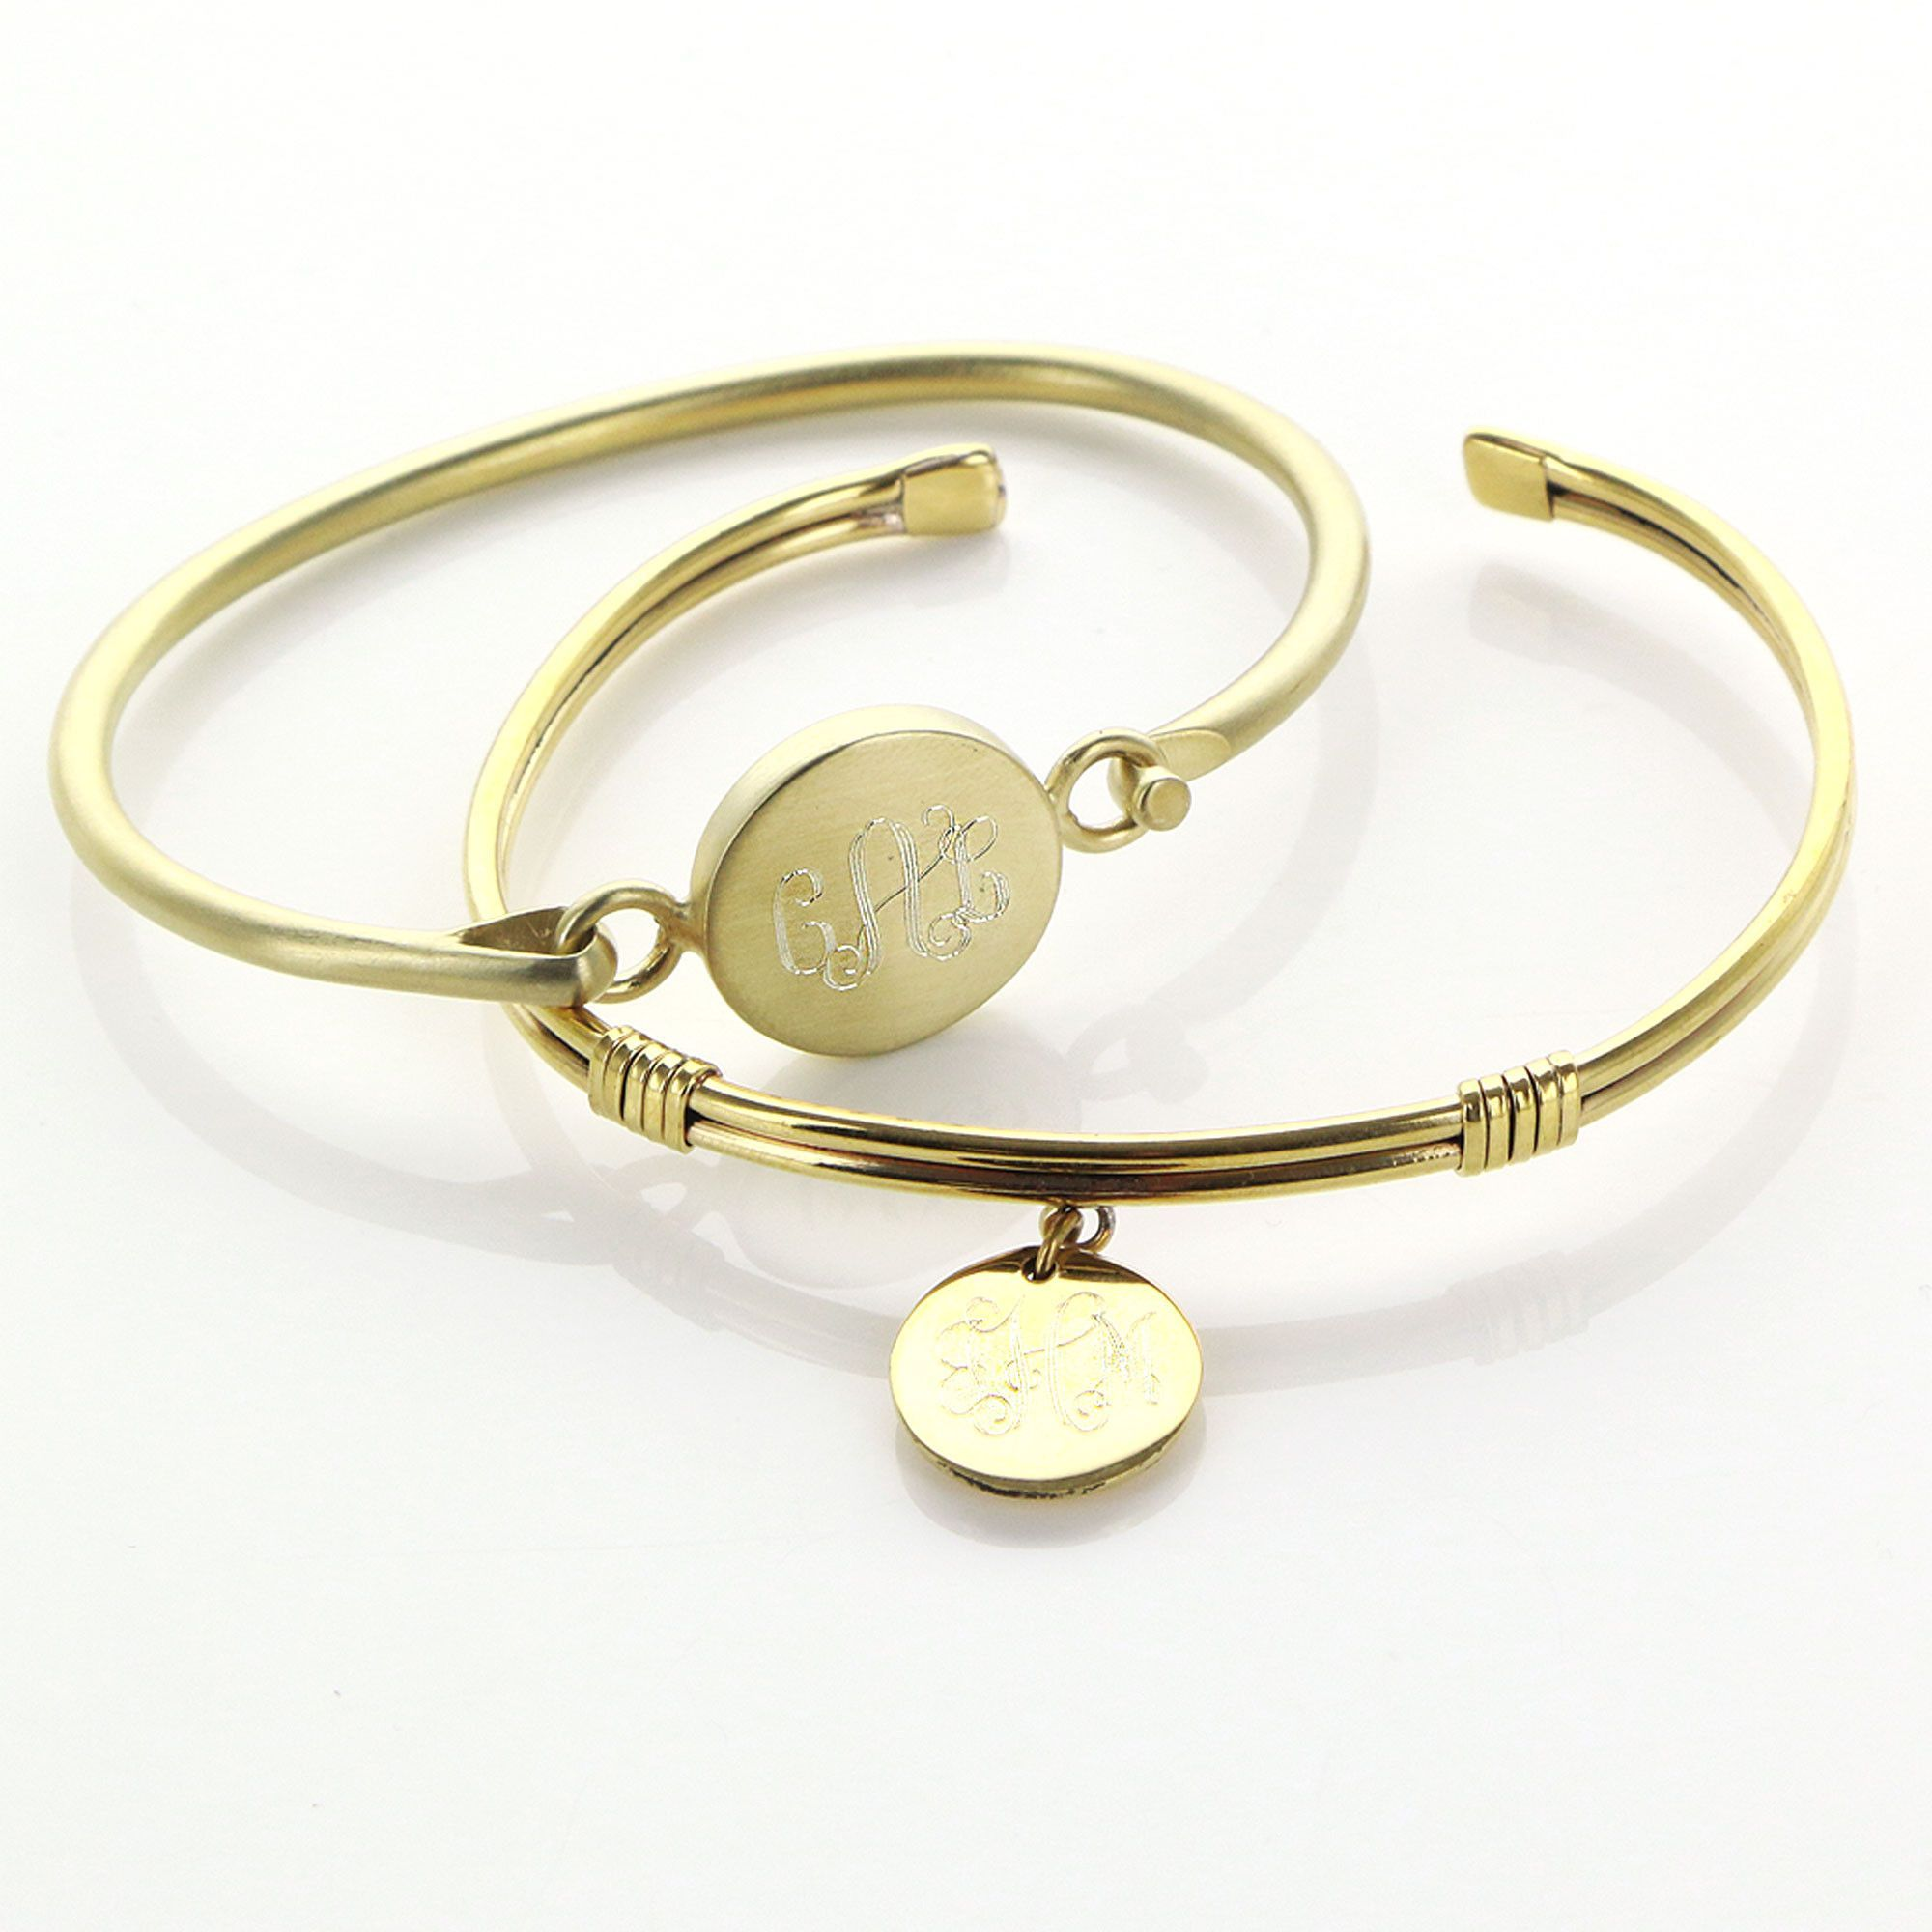 jewelry in lyst fin monogramme bangle gallery bangles bracelets metallic bracelet gold product laurent signature normal charm saint